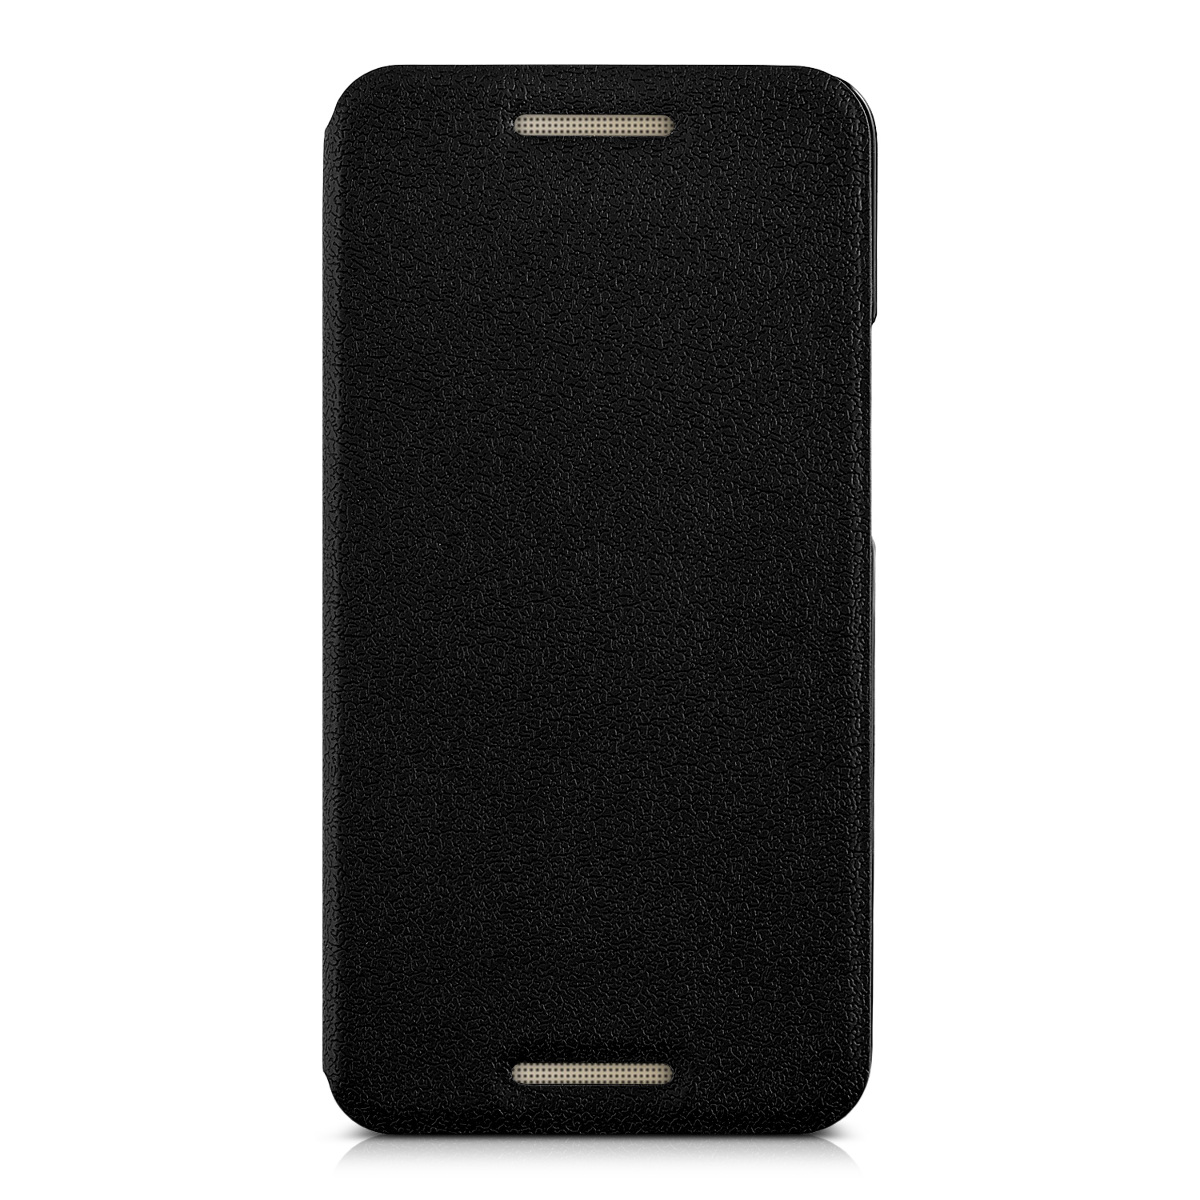 2ae848cf690 kwmobile Case for HTC One M7 - Book Style Flip Folio Slim Wallet Cover with  Stand Feature - Black. ‹ › ‹ › ‹ › ‹ ›